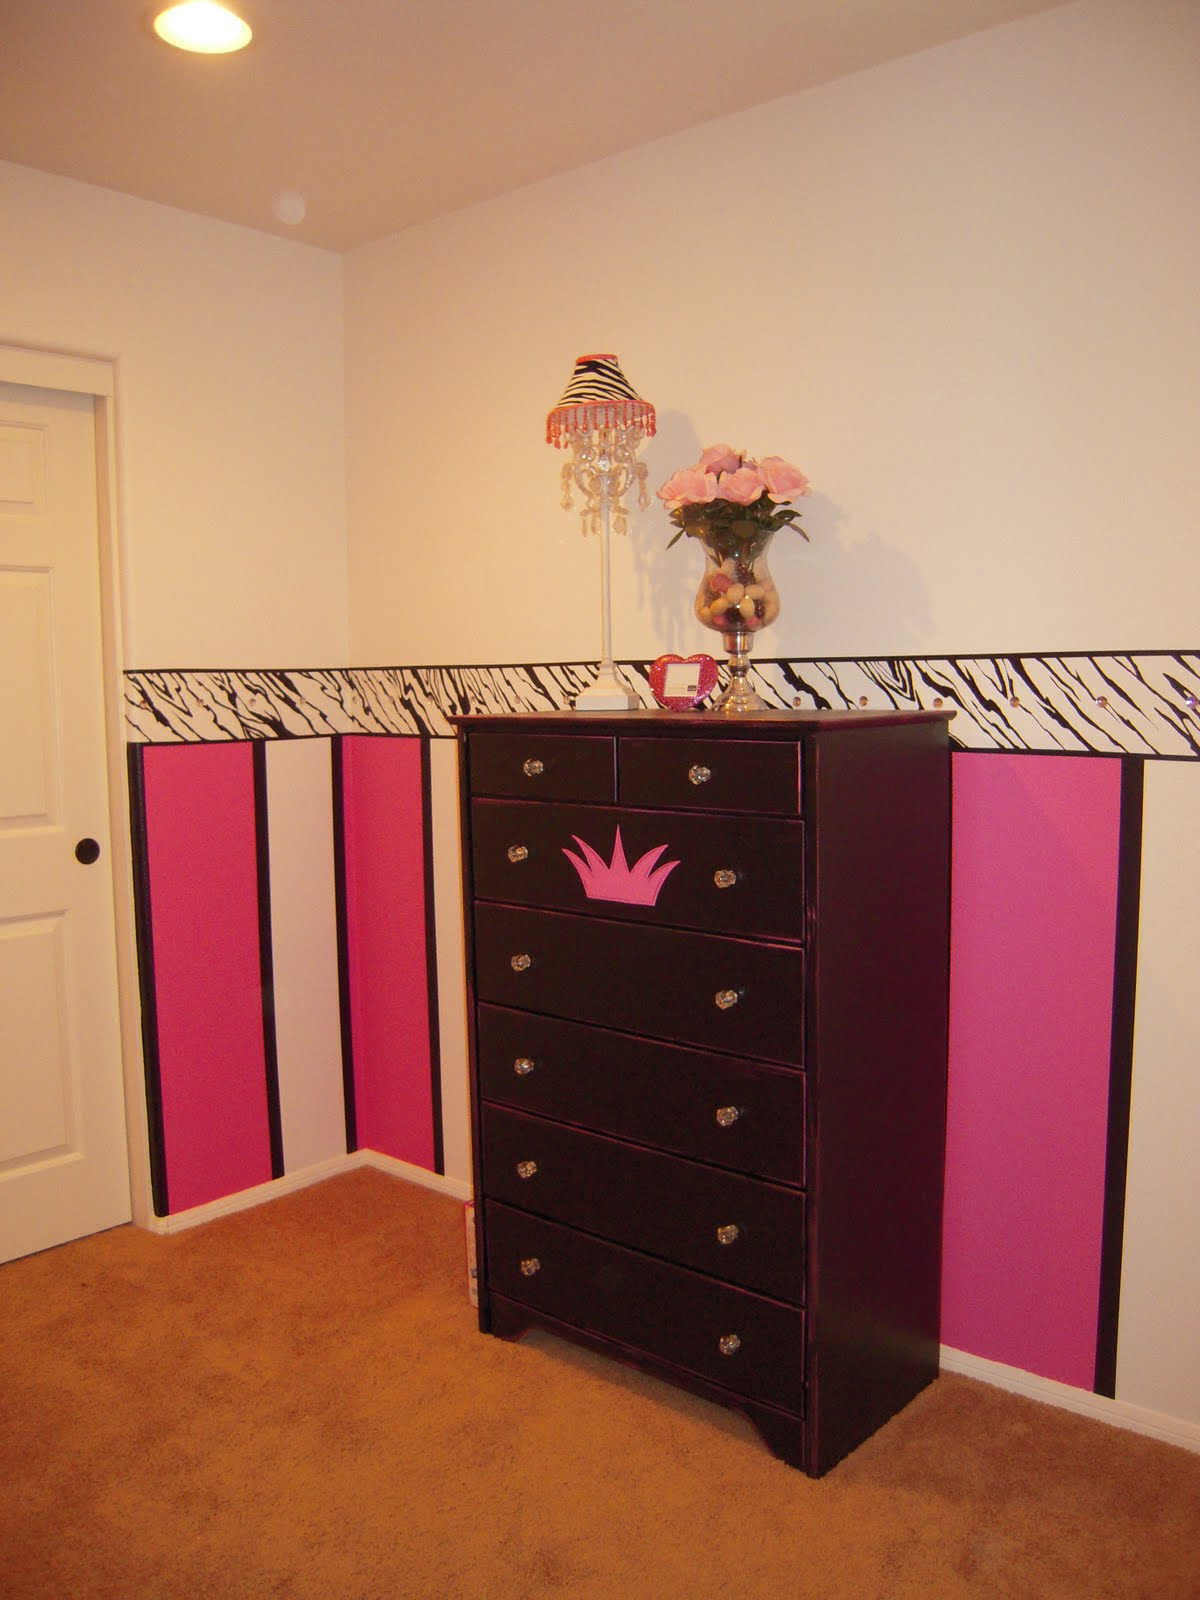 Posh Paint Designs Black And White And Hot Pink All Over